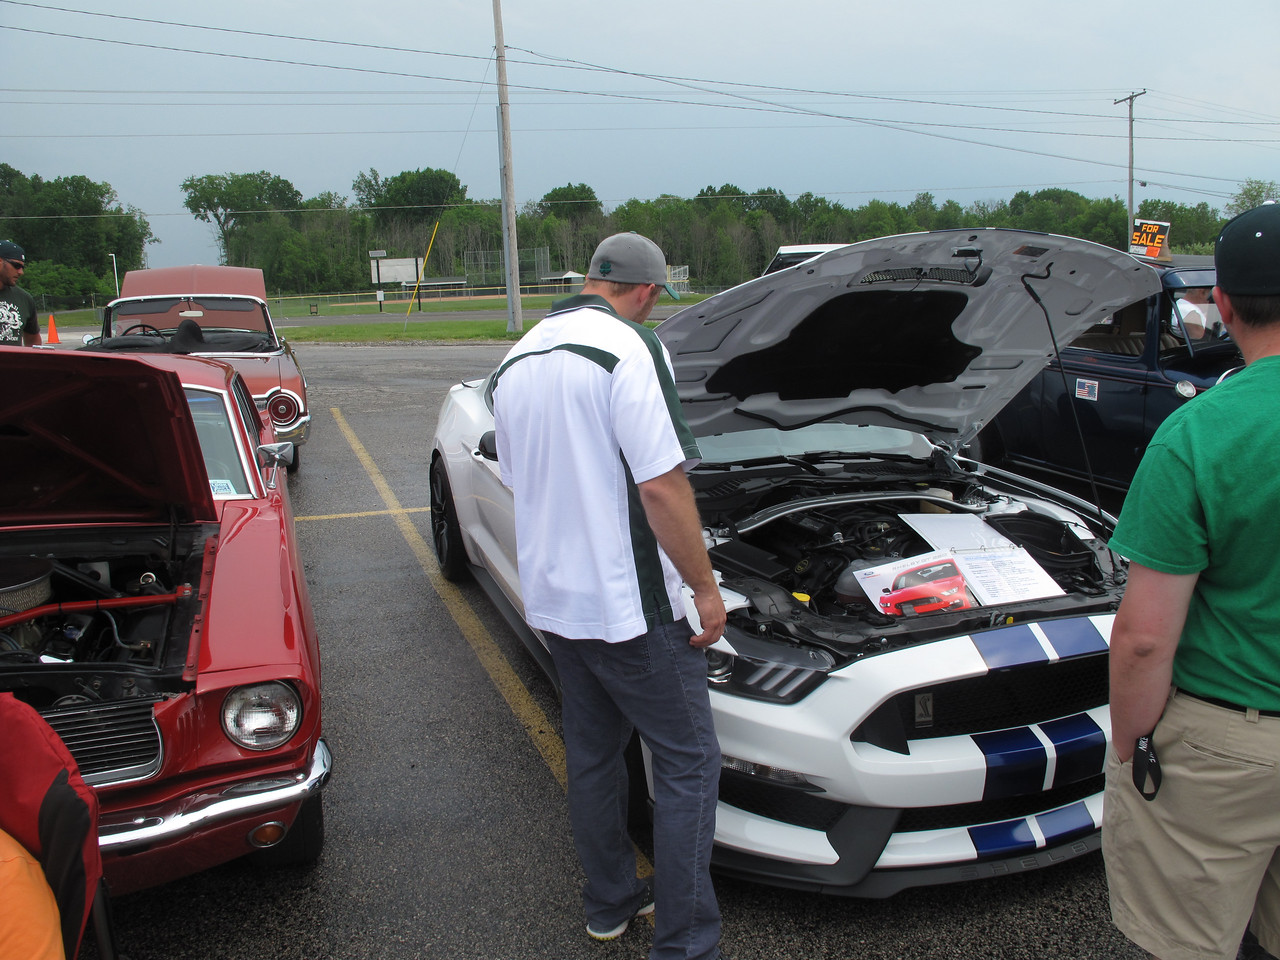 BOB FINNAN / GAZETTE Several onlookers admire the 2016 Ford Shelby GT 350 Sunday at the Cloverleaf High School bowling team car show.